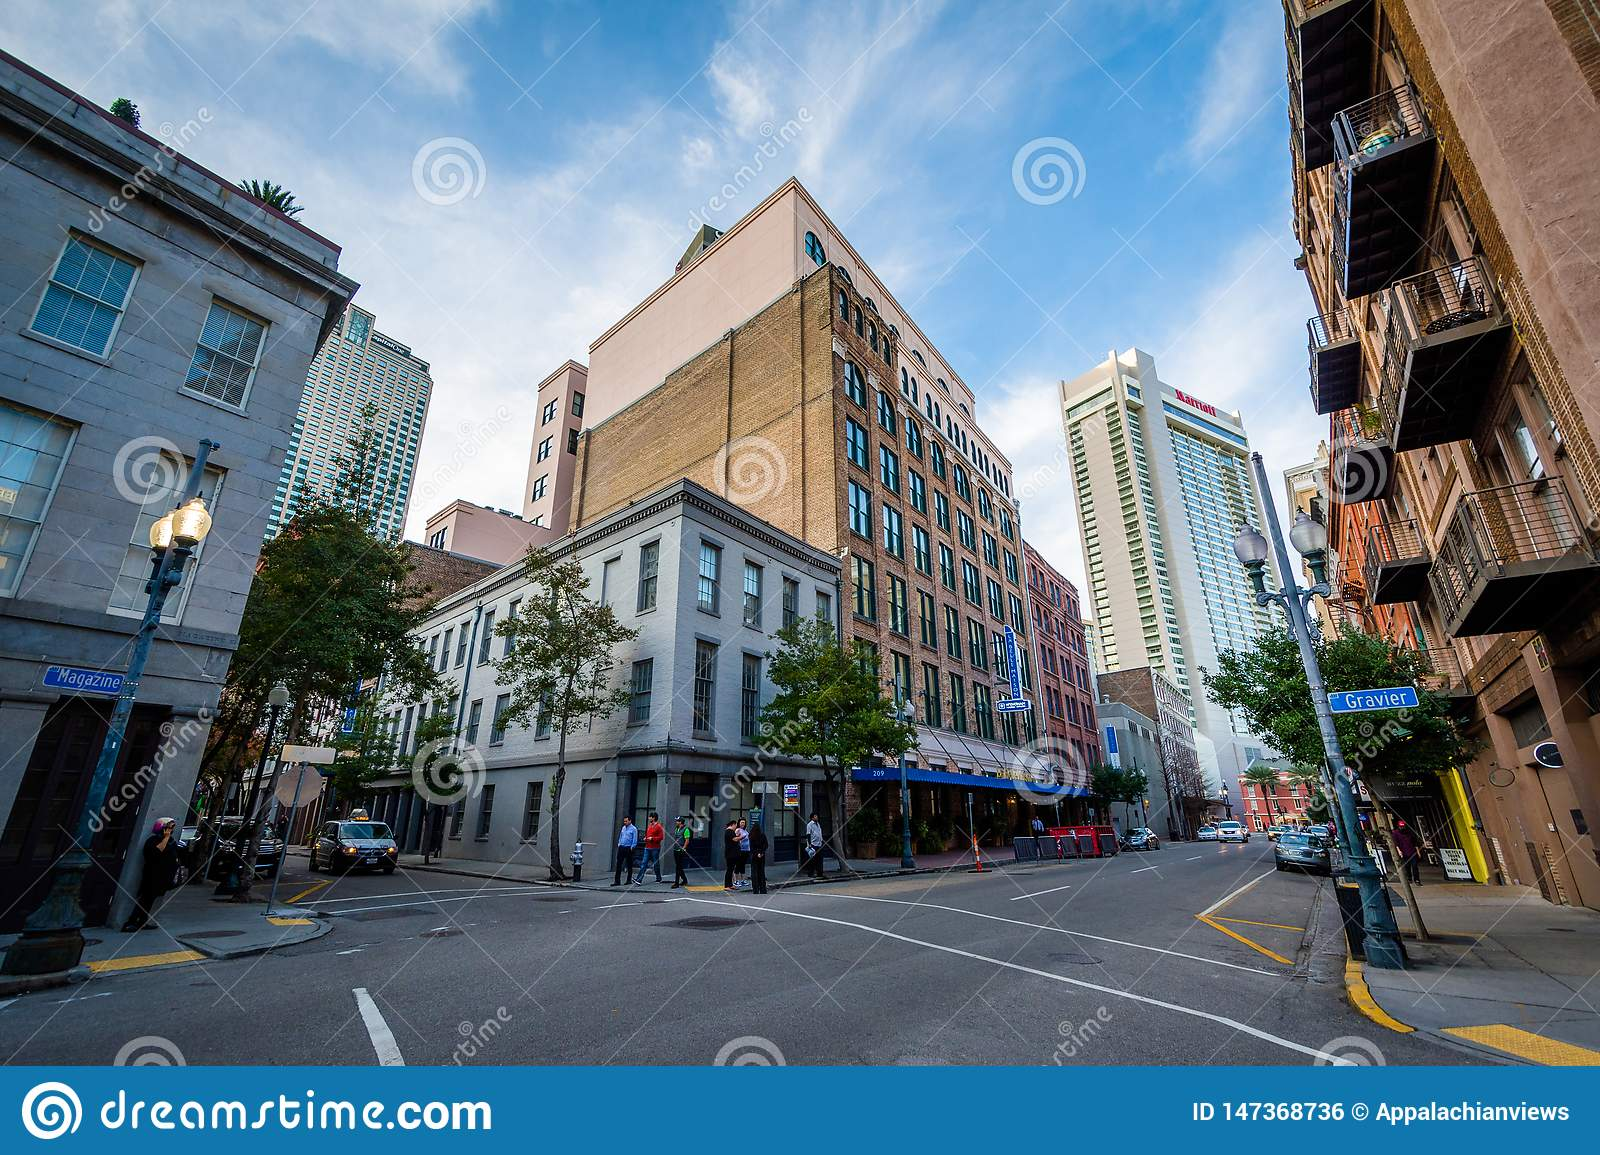 Buildings on Magazine Street, in New Orleans, Louisiana